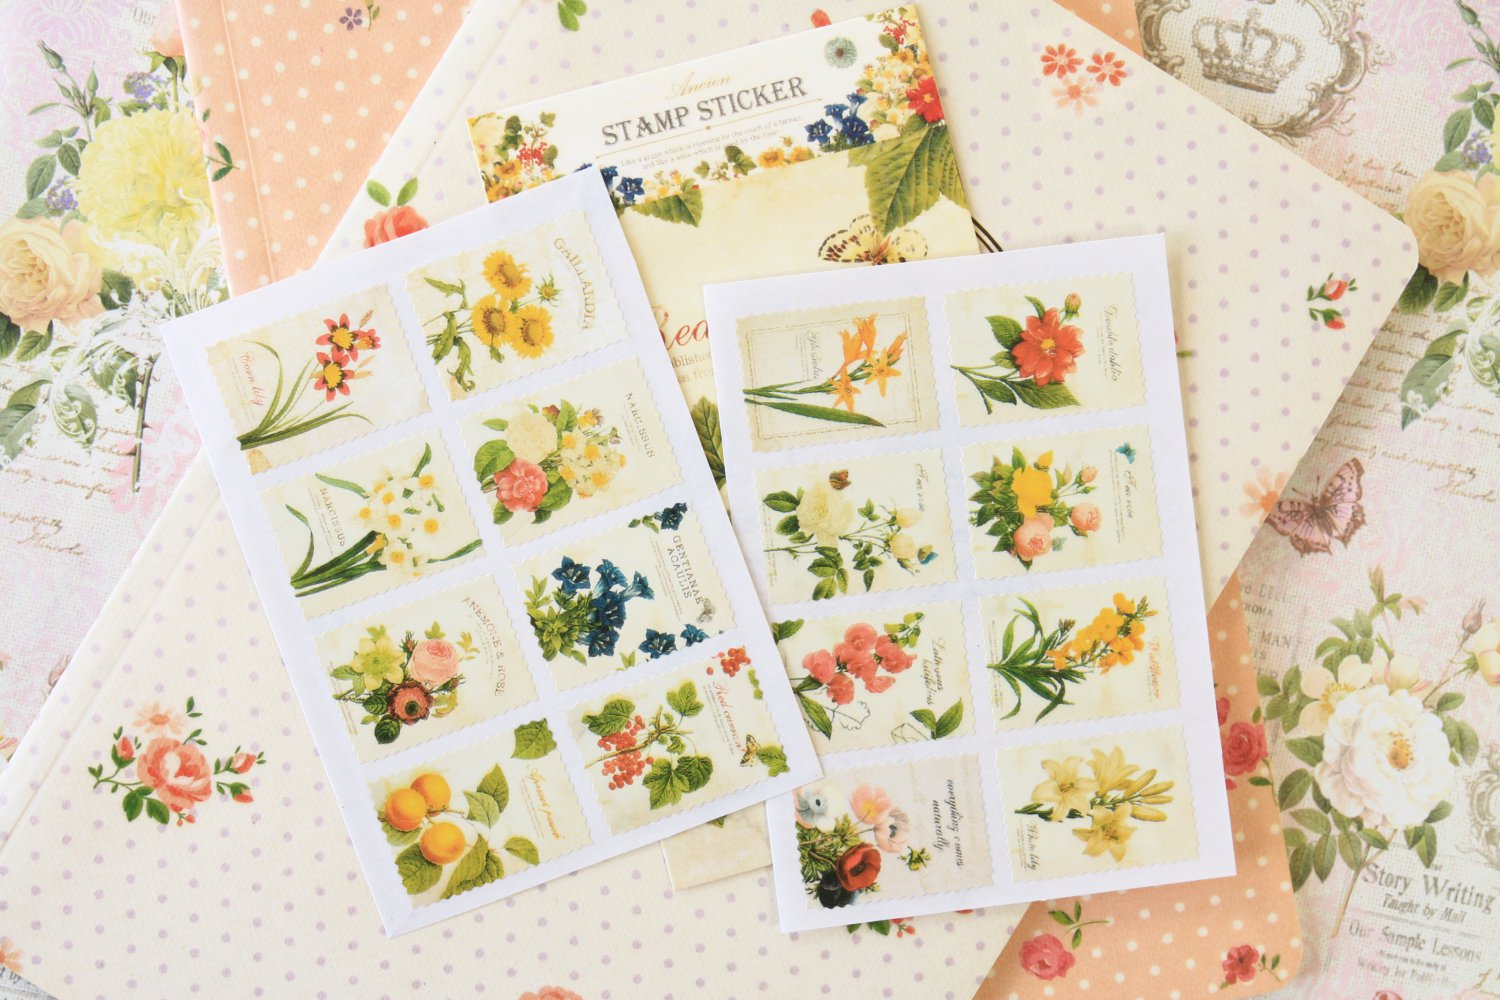 02 Botanical Ancien cartoon stamp stickers